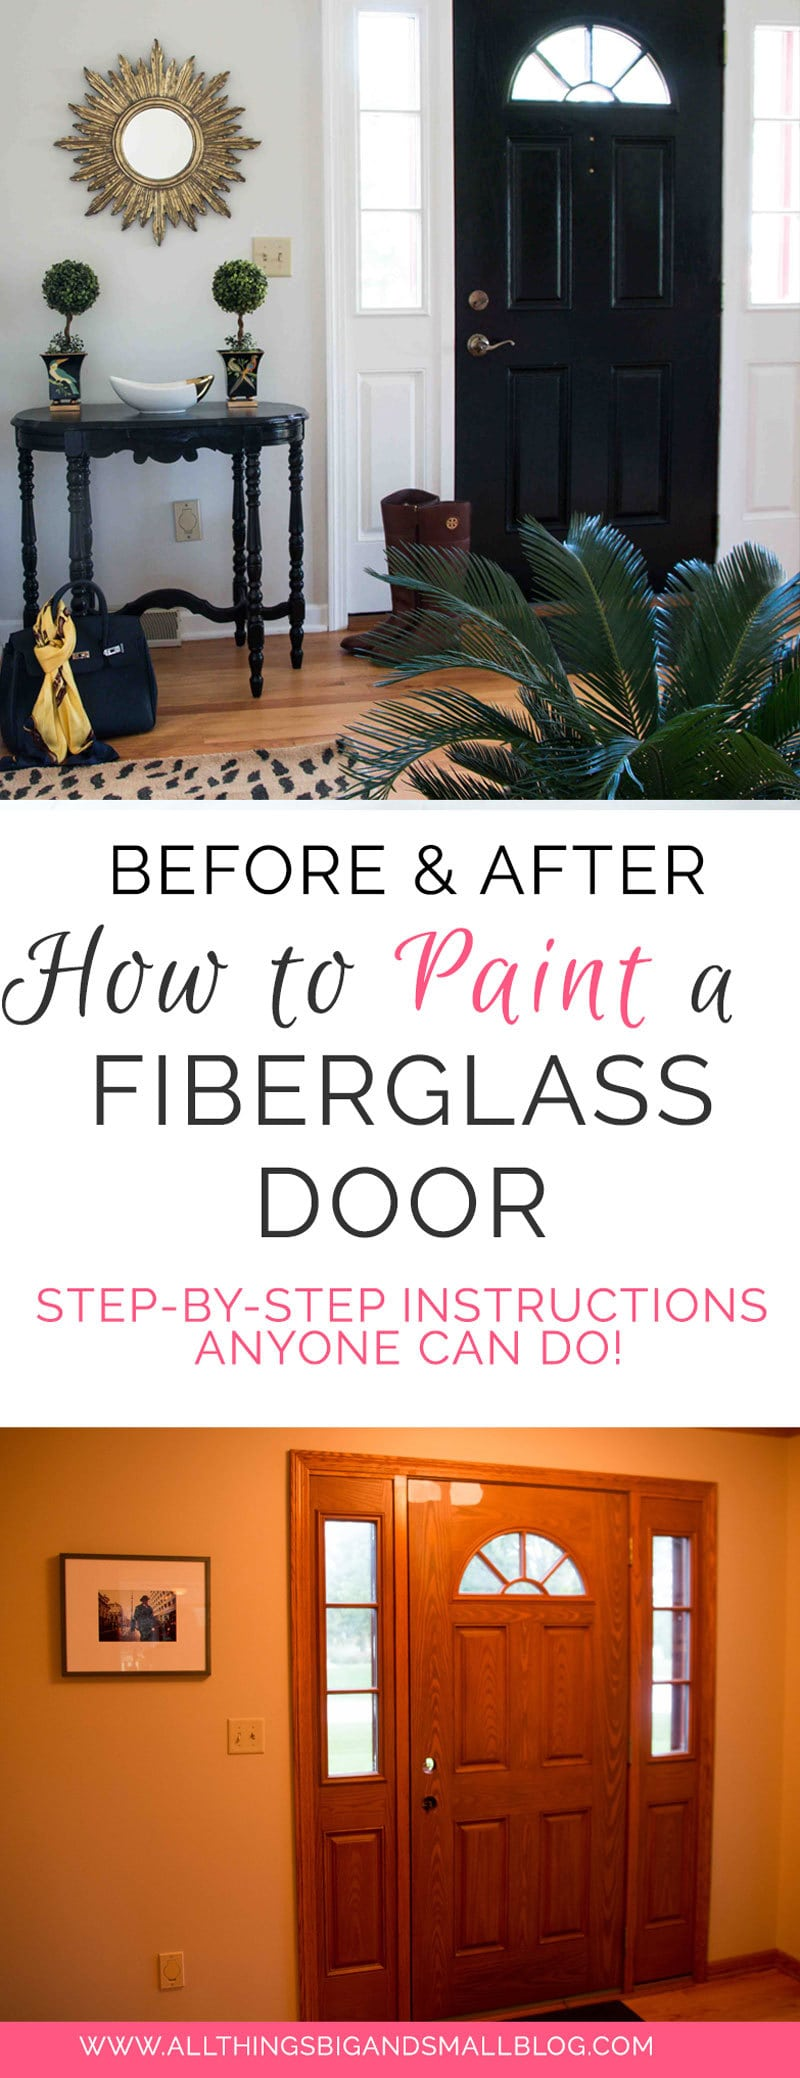 How To Paint Fiberglass Door: a step-by-step tutorial on how to paint front door - How To Paint Fiberglass Door by home decor blogger DIY Decor Mom